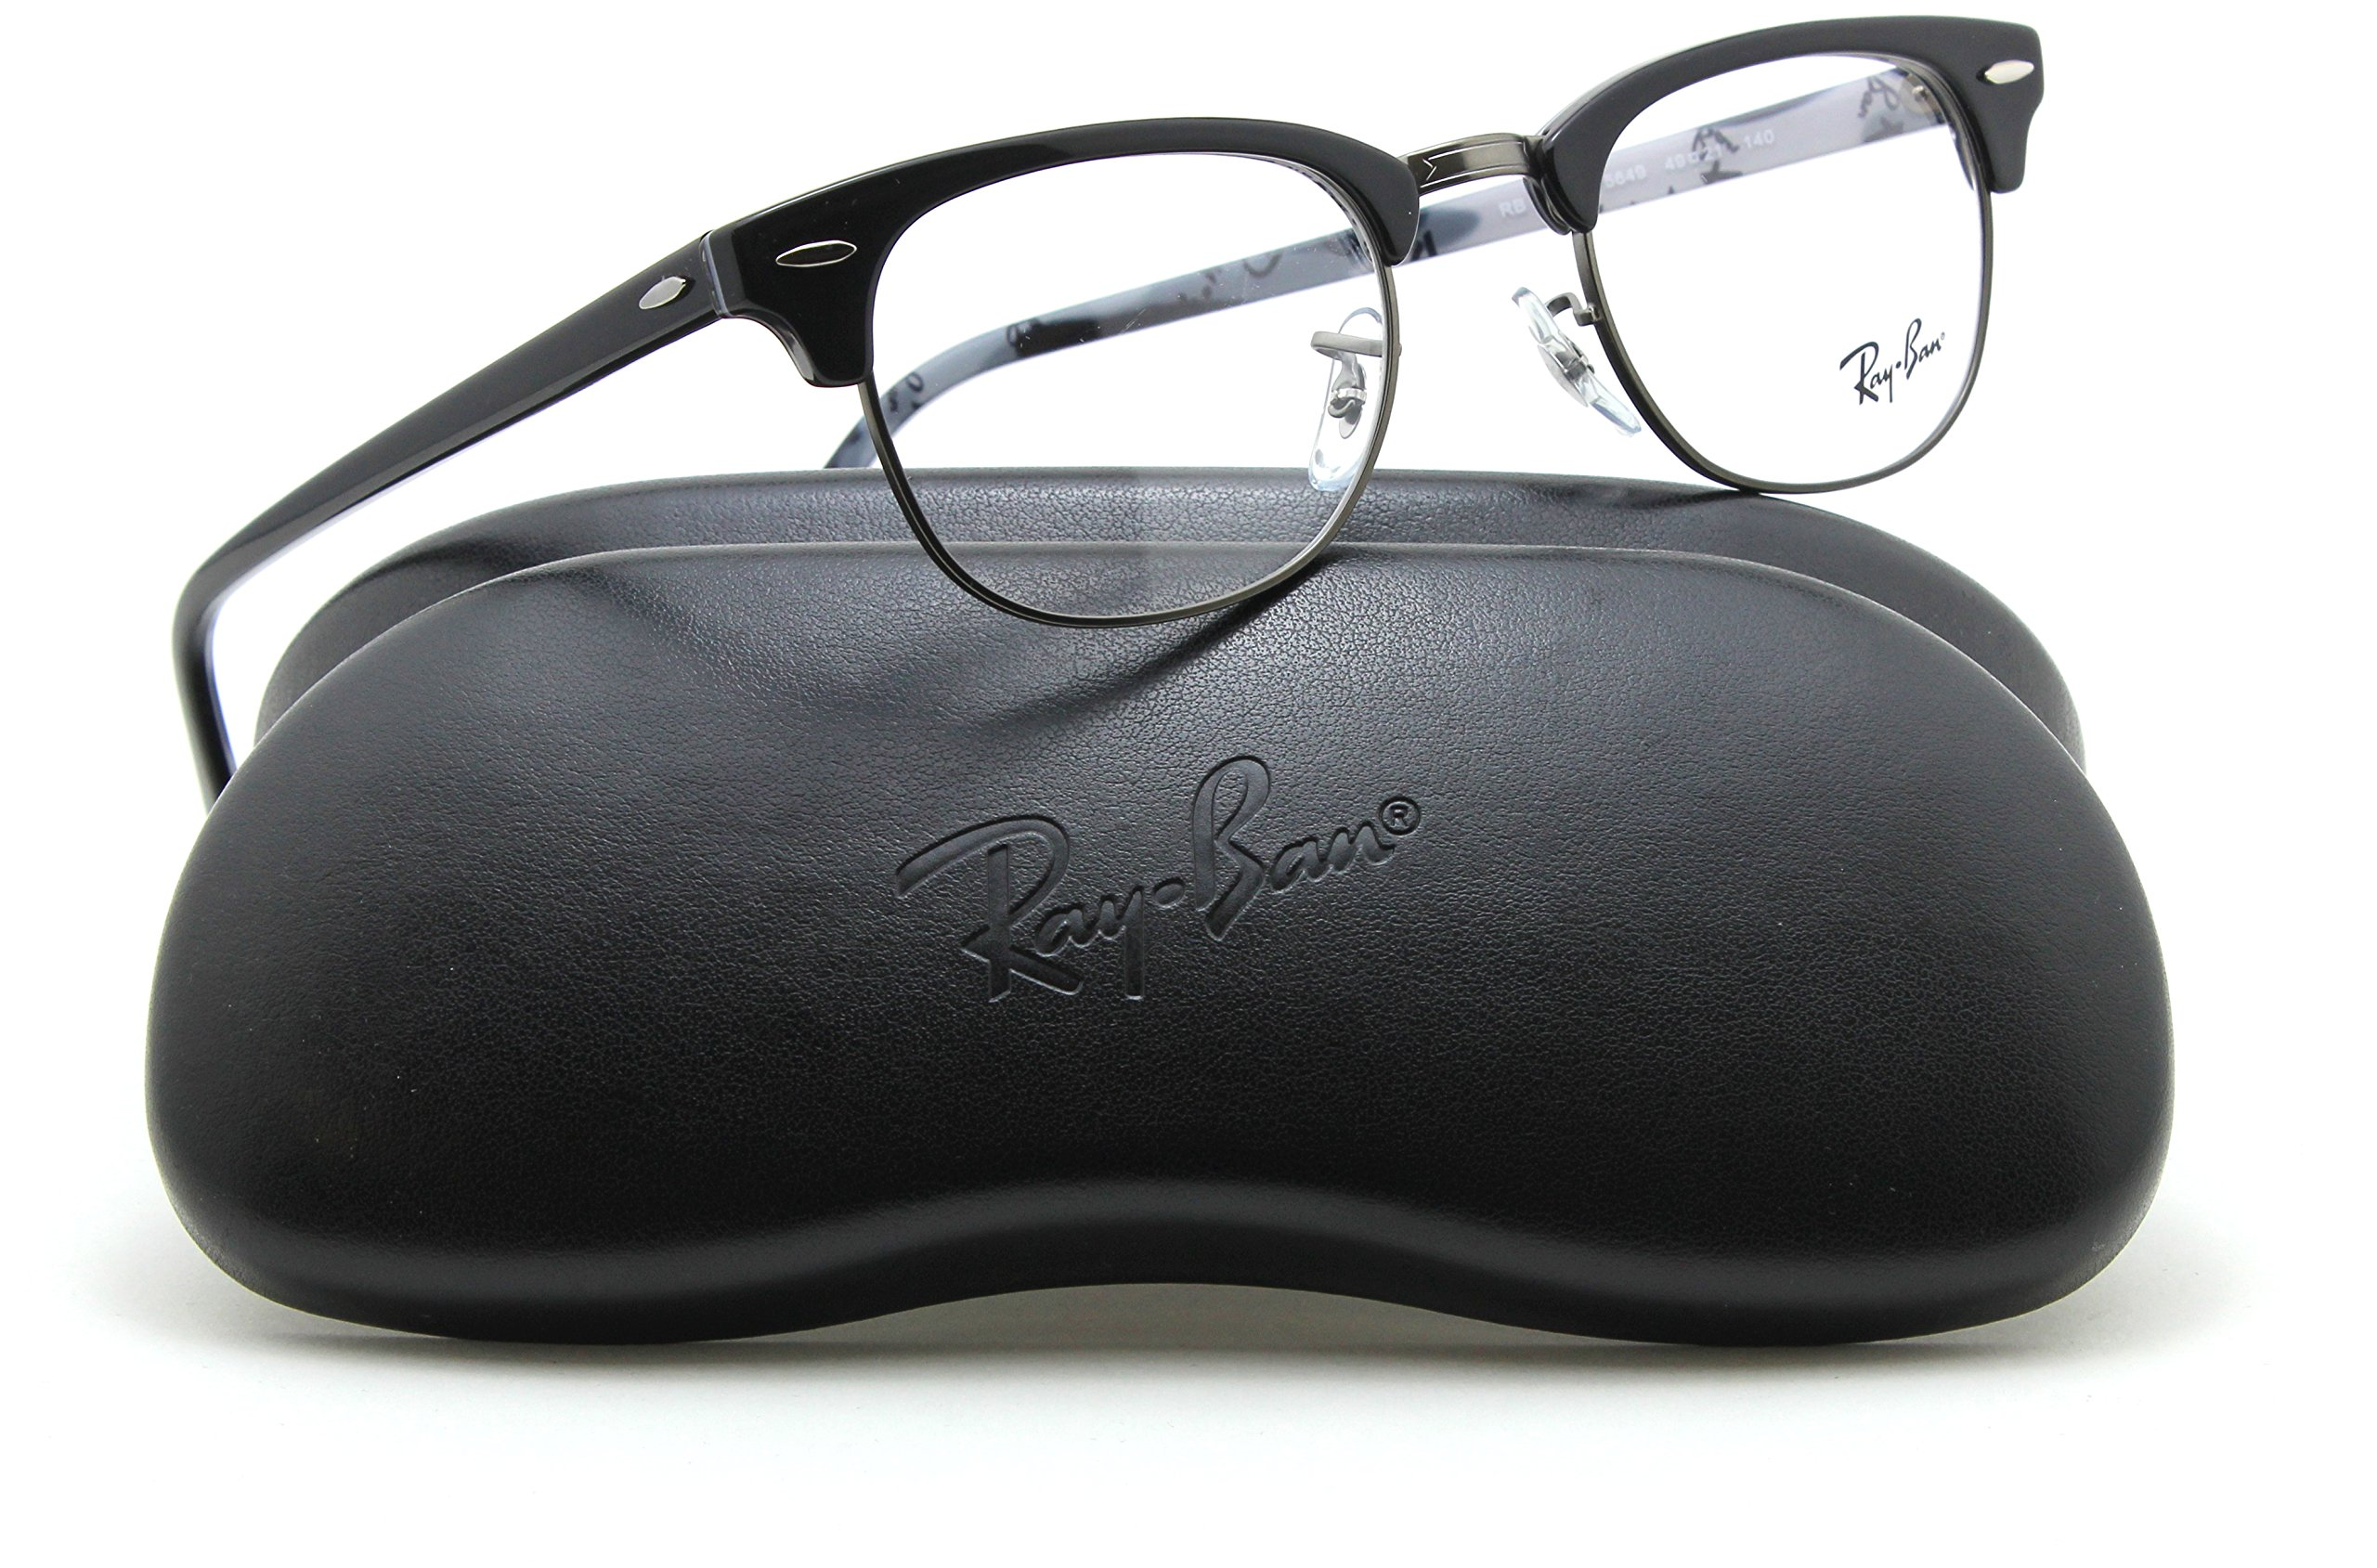 Ray-Ban RX5154 Clubmaster Optics Prescription Glasses 5649 - 49